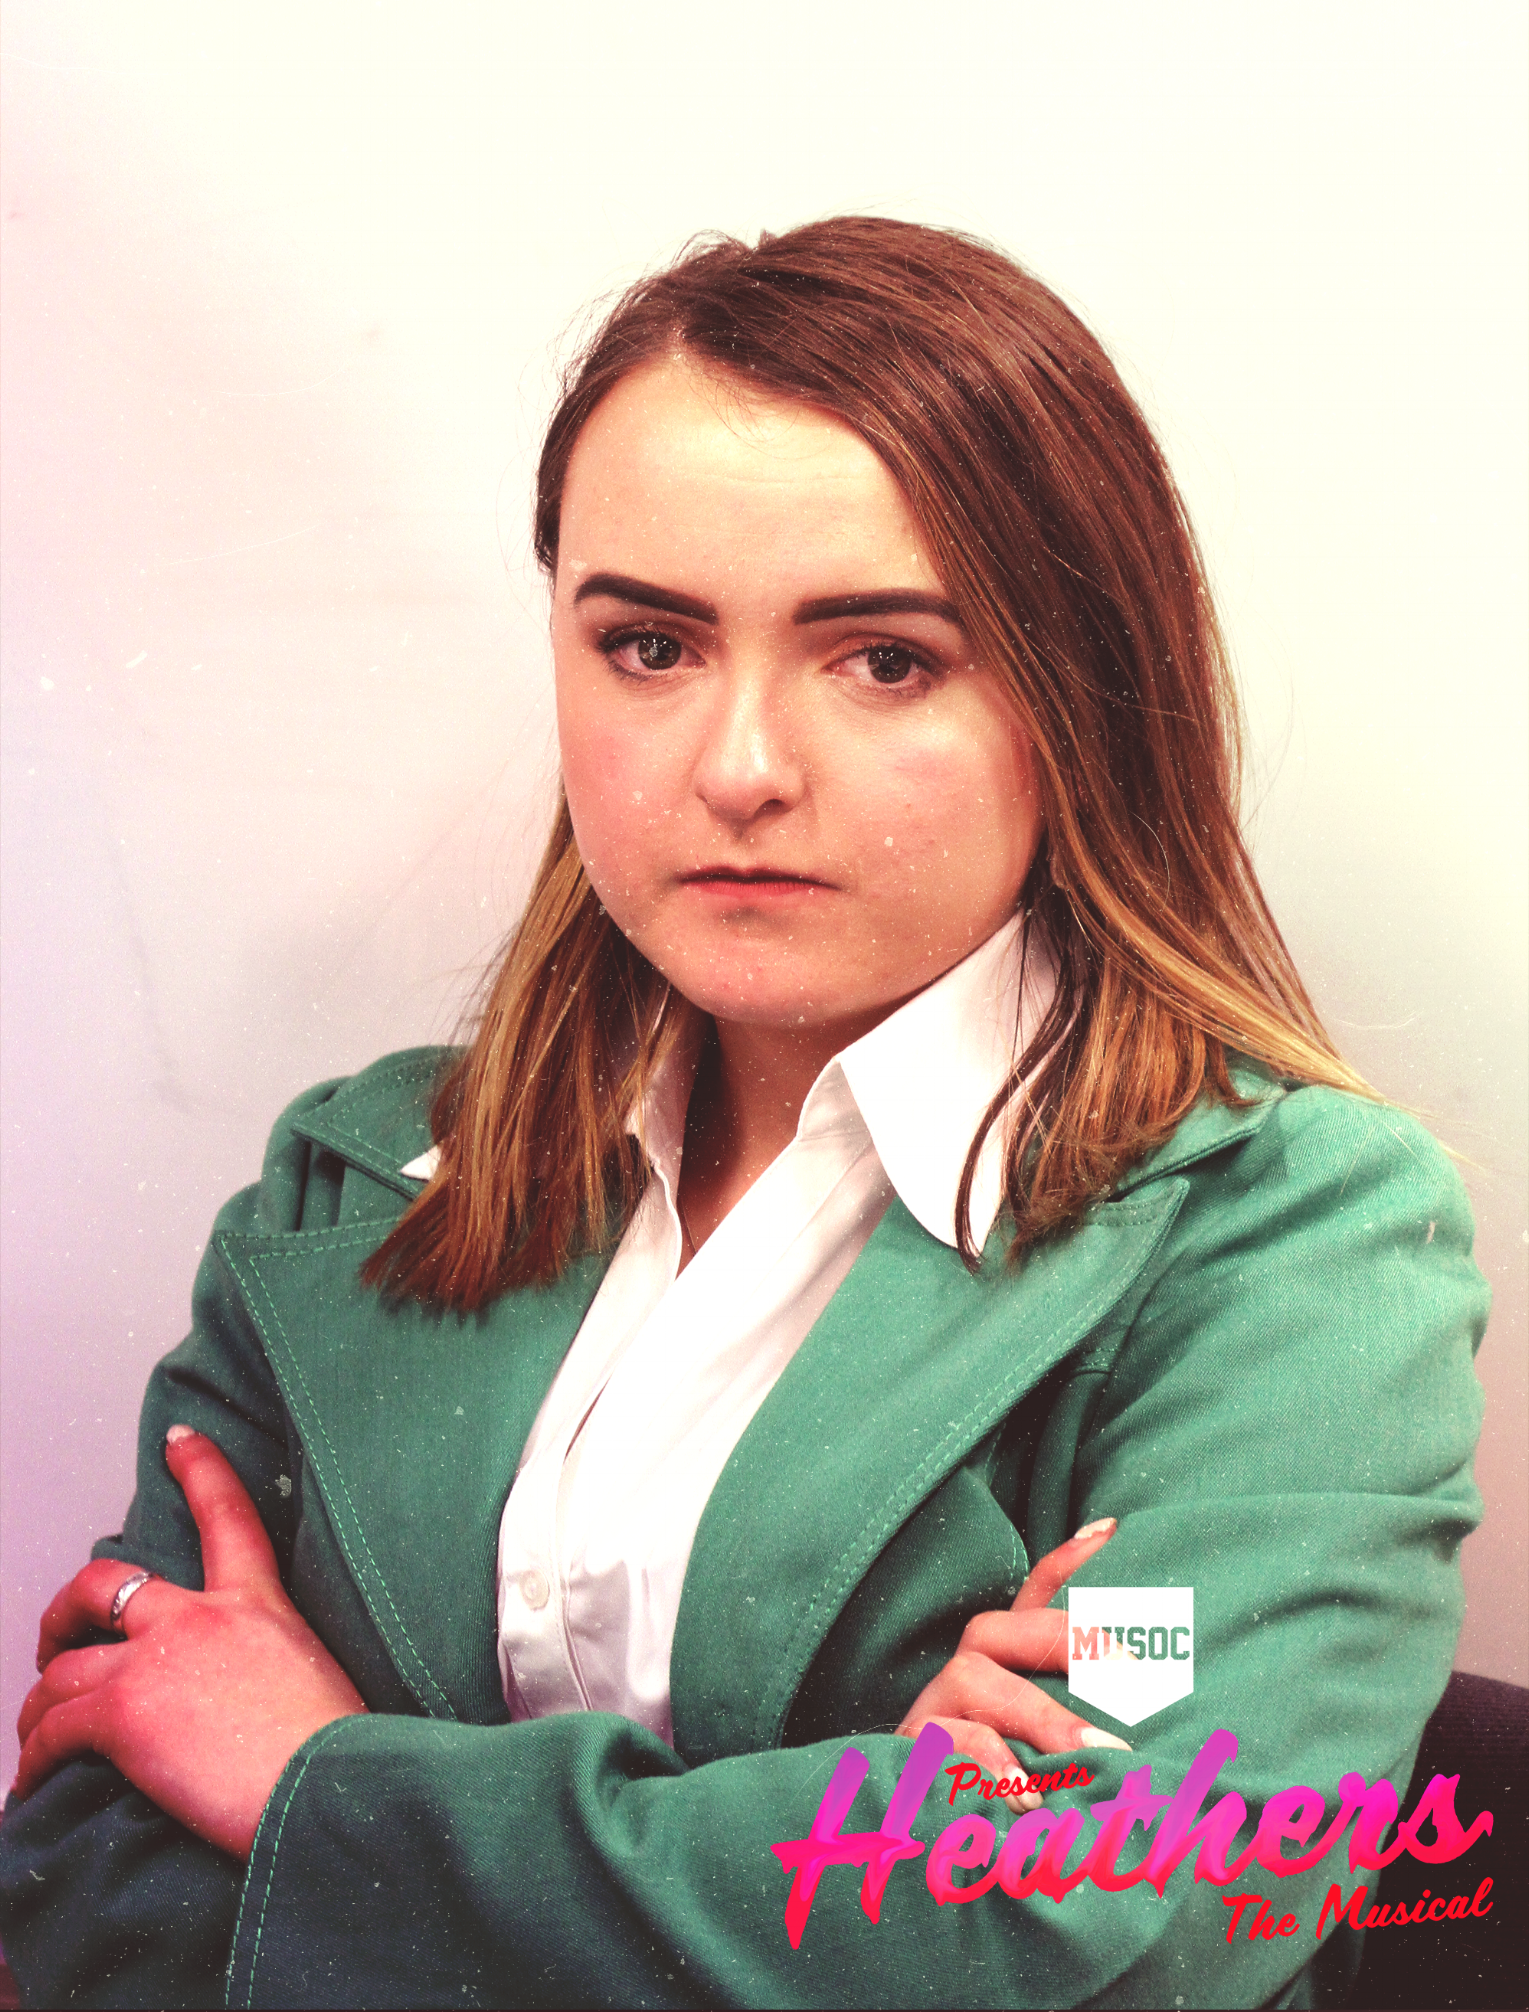 ALI DIAMOND - HEATHER DUKE  Ali is currently studying at NZ school of Tourism, and it's her first show with MUSOC. Ali (Annelise) is a well known performer in her home town of Ashburton, but is excited to take on Heather Duke as her first main role in a Christchurch show.